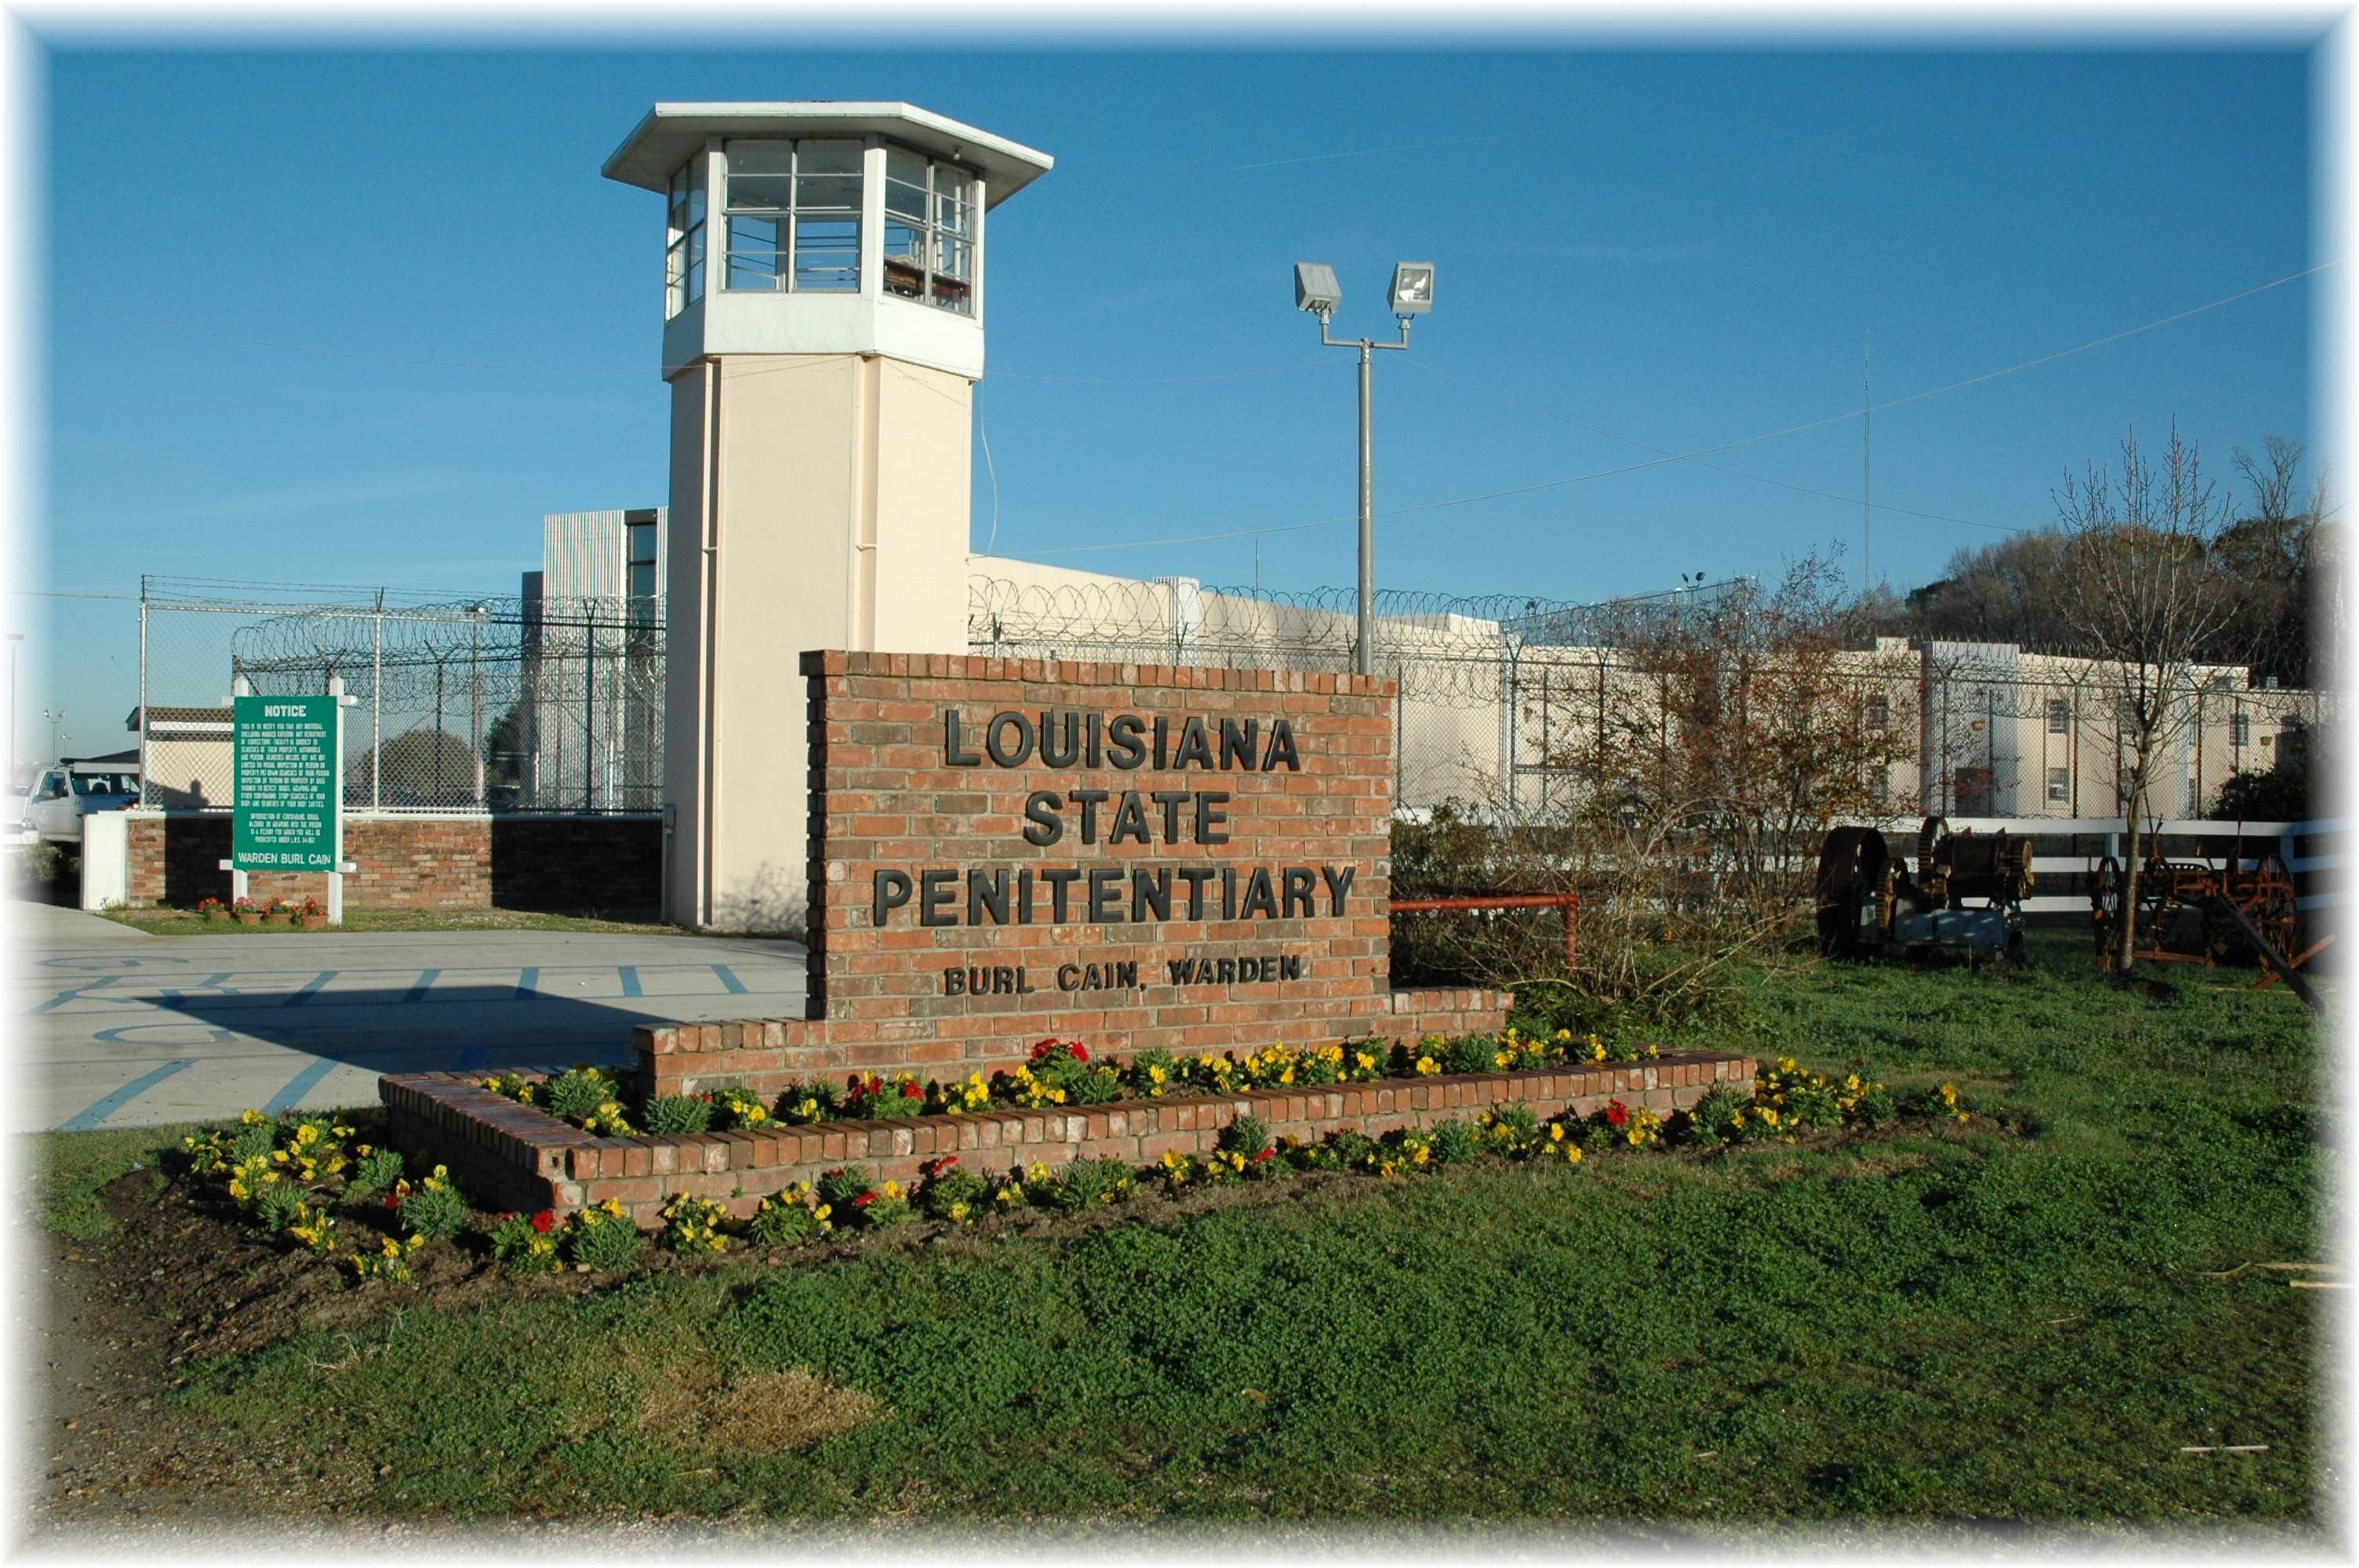 Louisiana Prisons Hire Troubled Doctors to Treat Aging